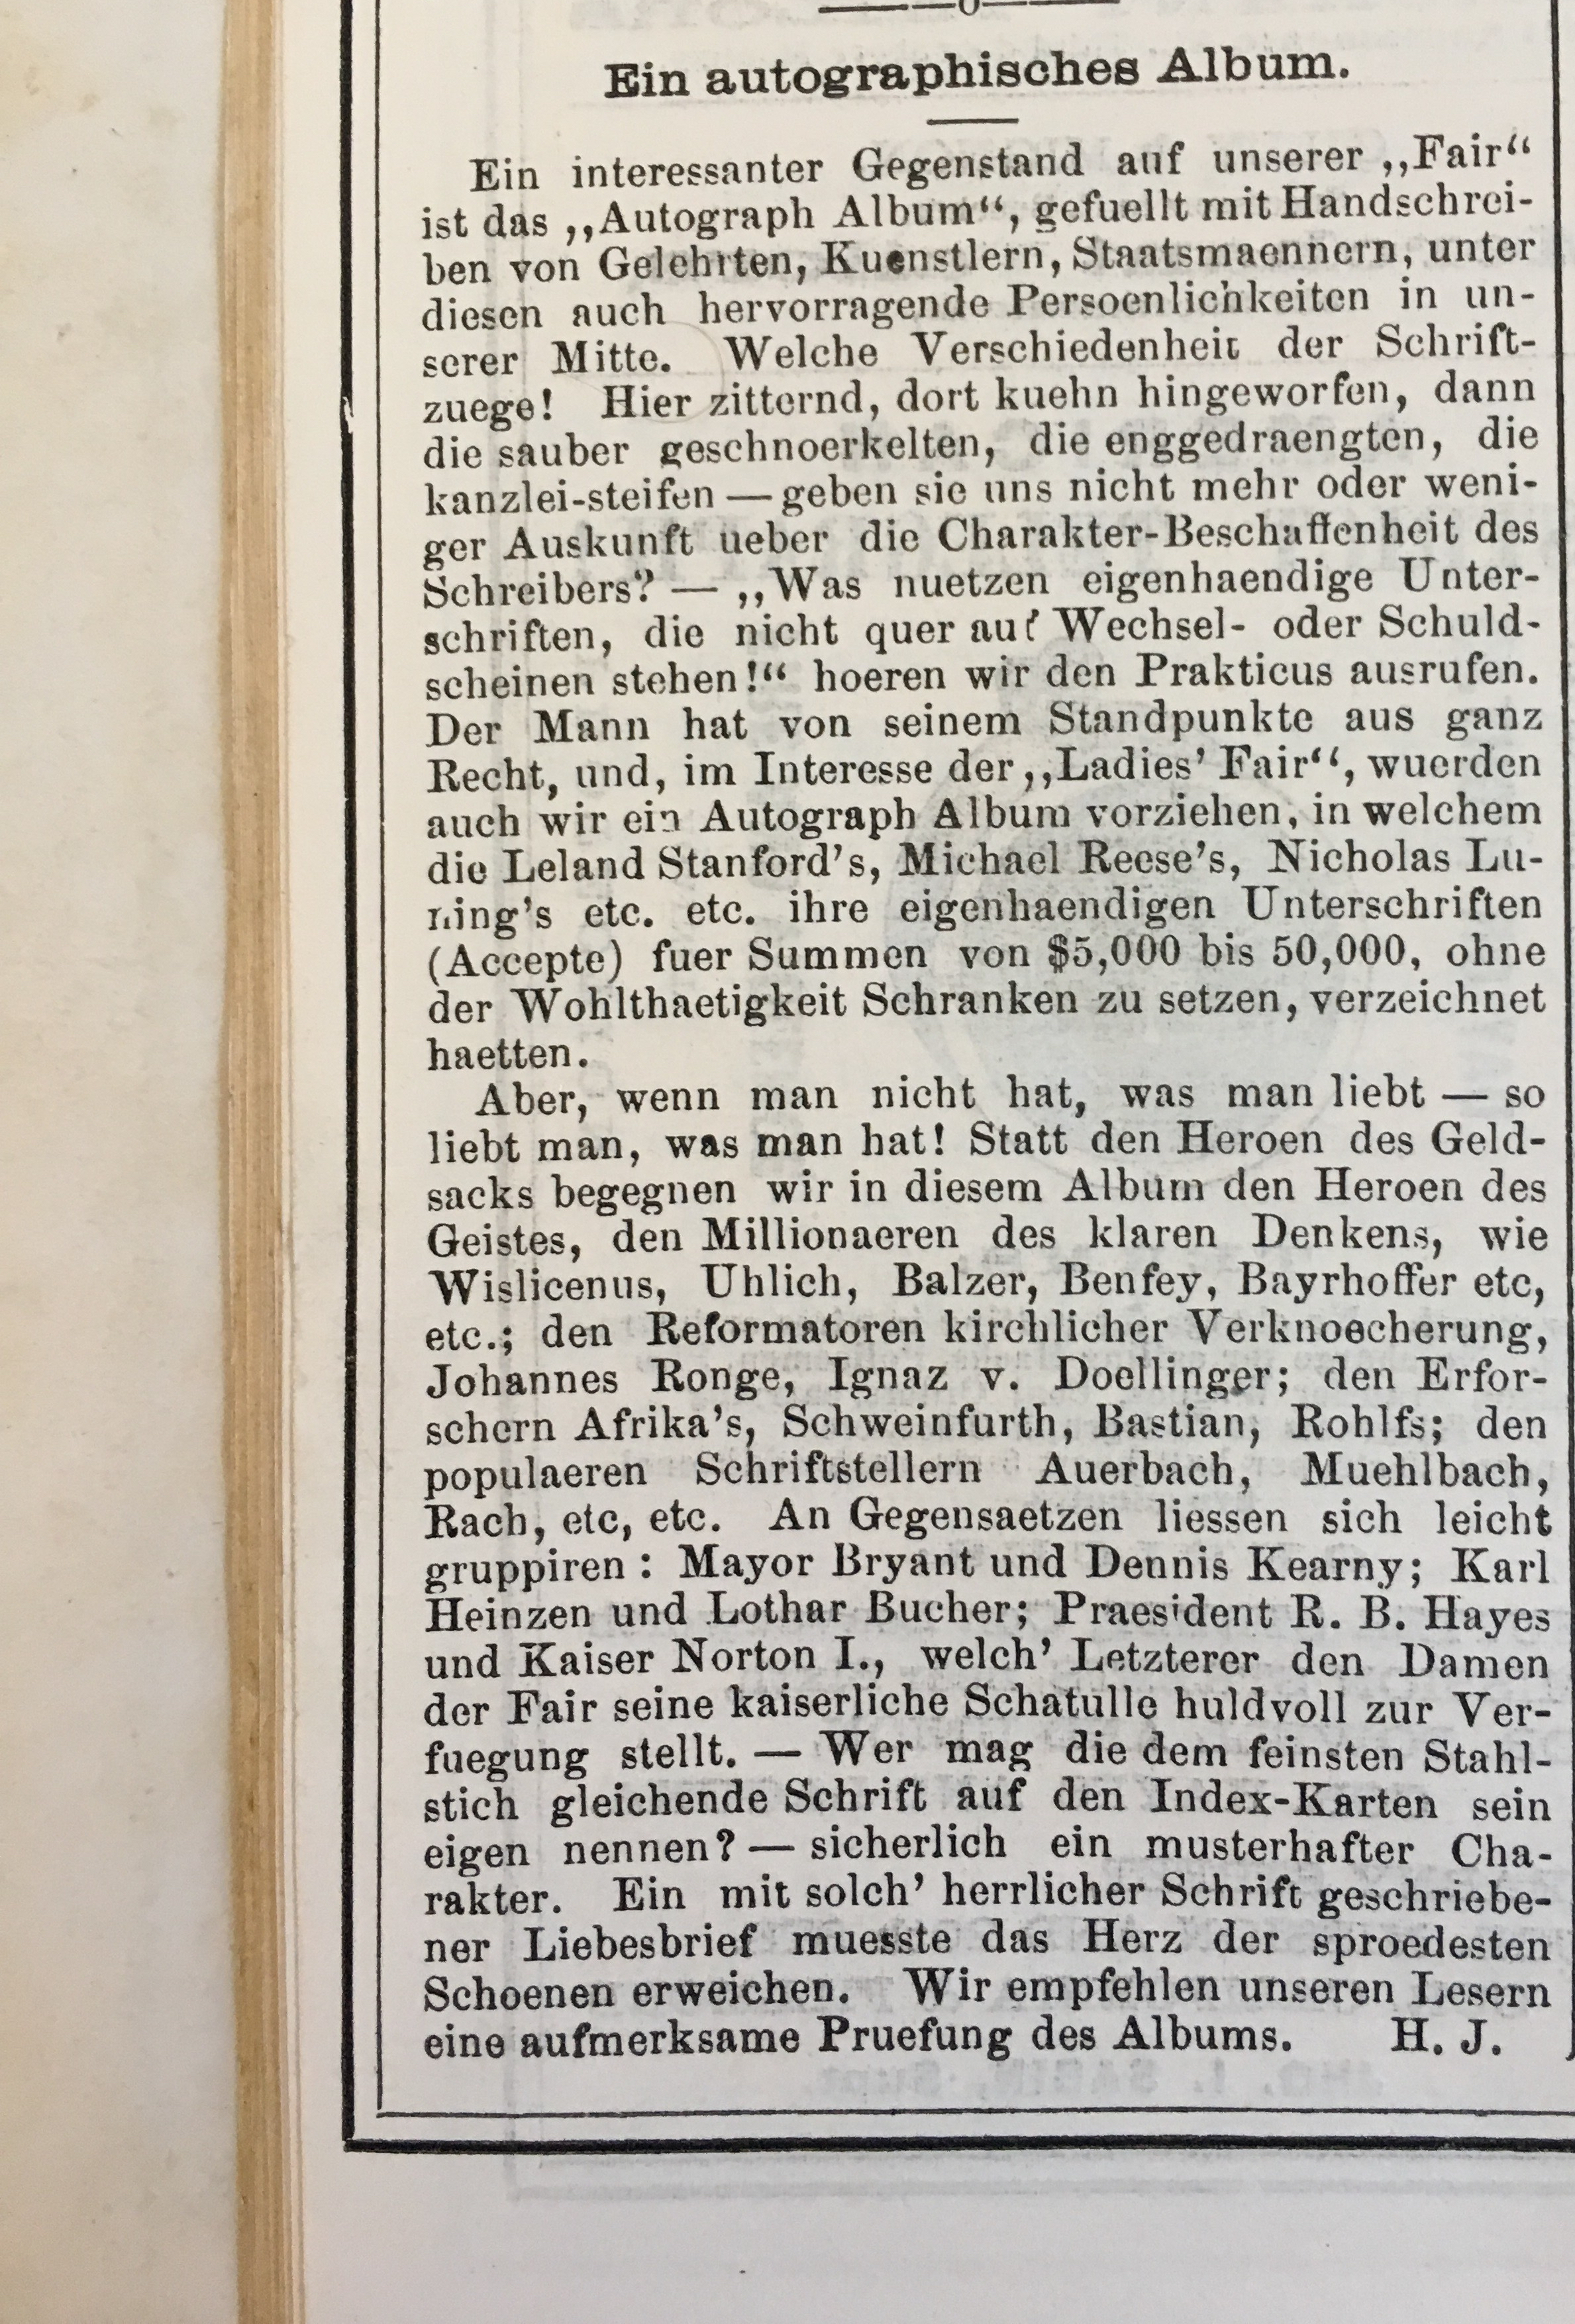 """""""An autographical album,"""" article in  The Daily Fair Report,  vol. 1, no. 5, Saturday, March 2, 1878.  Image courtesy of Scott Brown of Eureka Books, in Euke, Calif."""